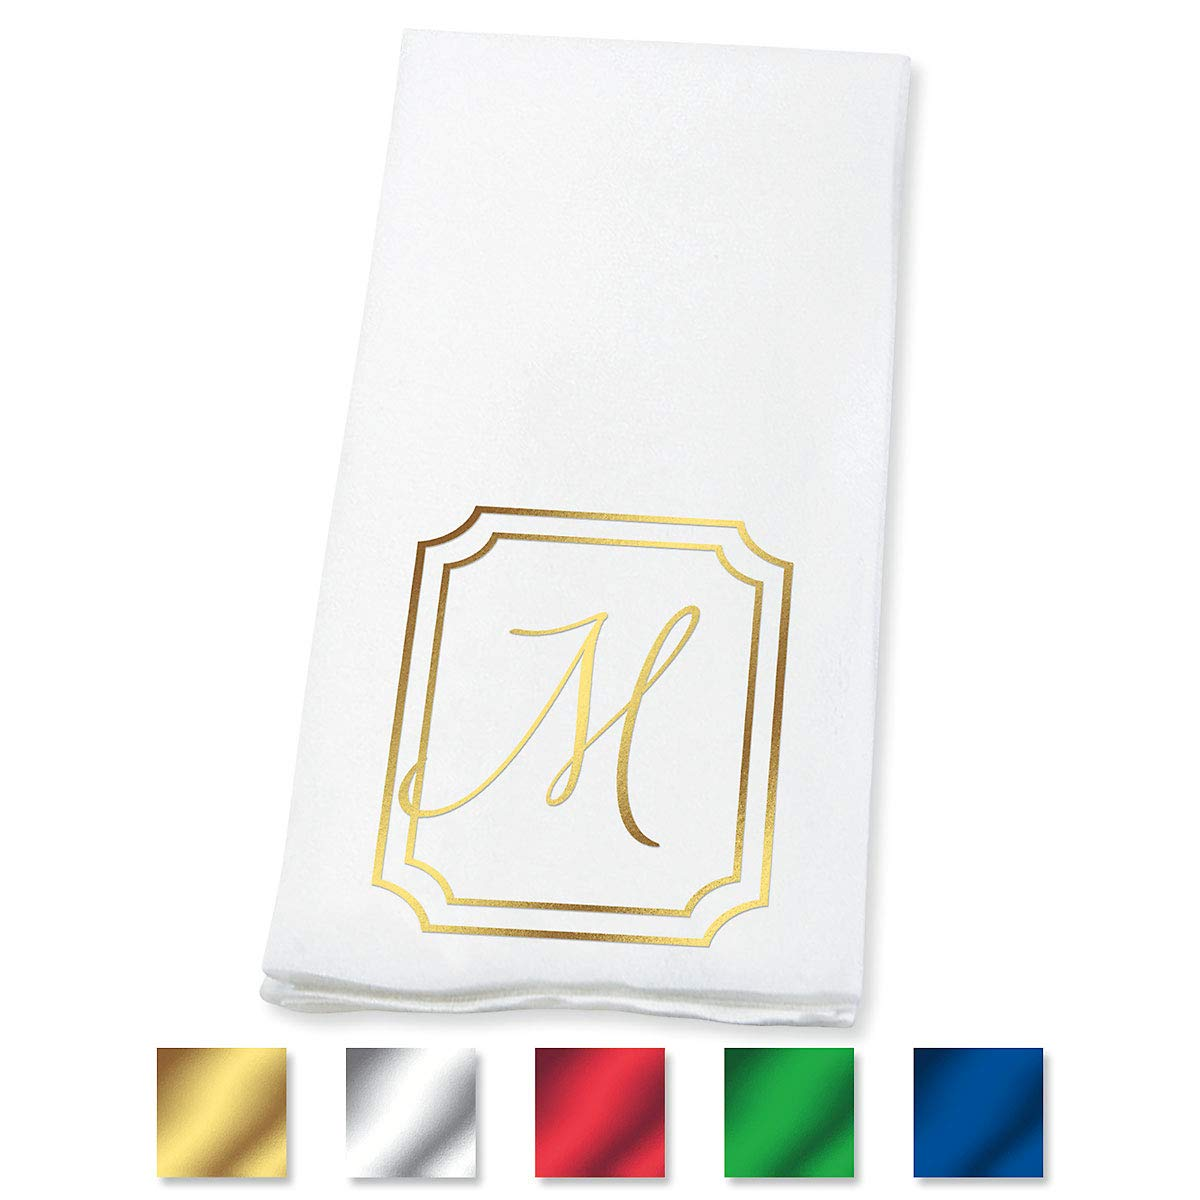 Lillian Vernon Frame Personalized Monogram Linen-Like Hand Towels (Set of 100)- 50% Cotton 50% Paper Blend, 13'' by 17'' Open and 4 1/2'' by 8 1/2'' Closed, Choose from 5 Colors, Weddings, Dinner Parties